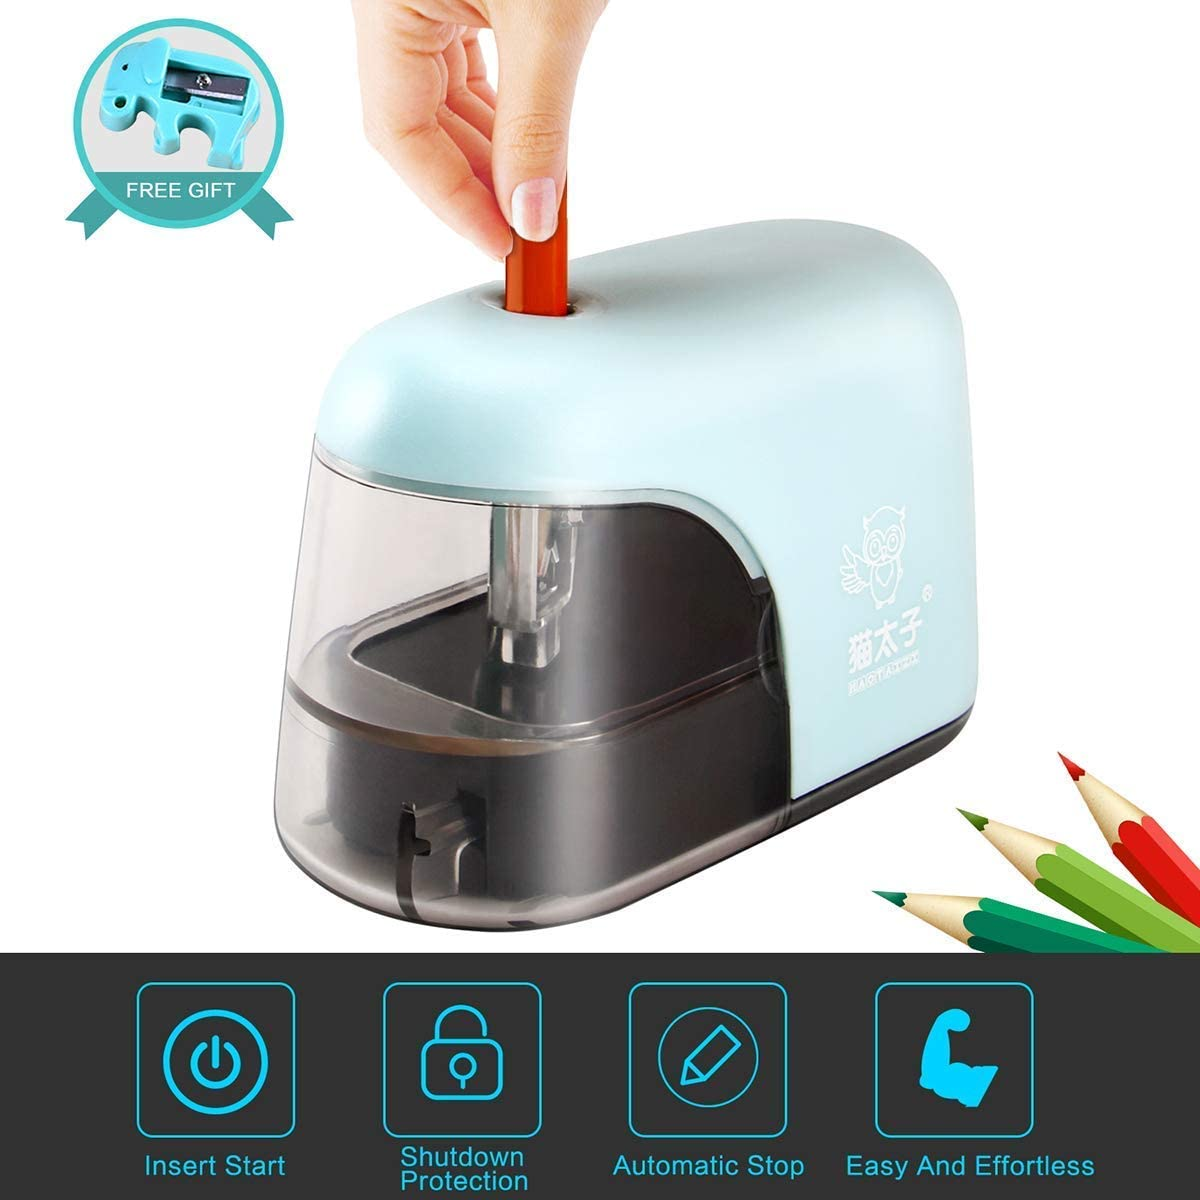 Pencil Sharpener Mini Electric Portable Pencil Sharpener Quiet Small Fast Sharpen Suitable for Students Artists Offices